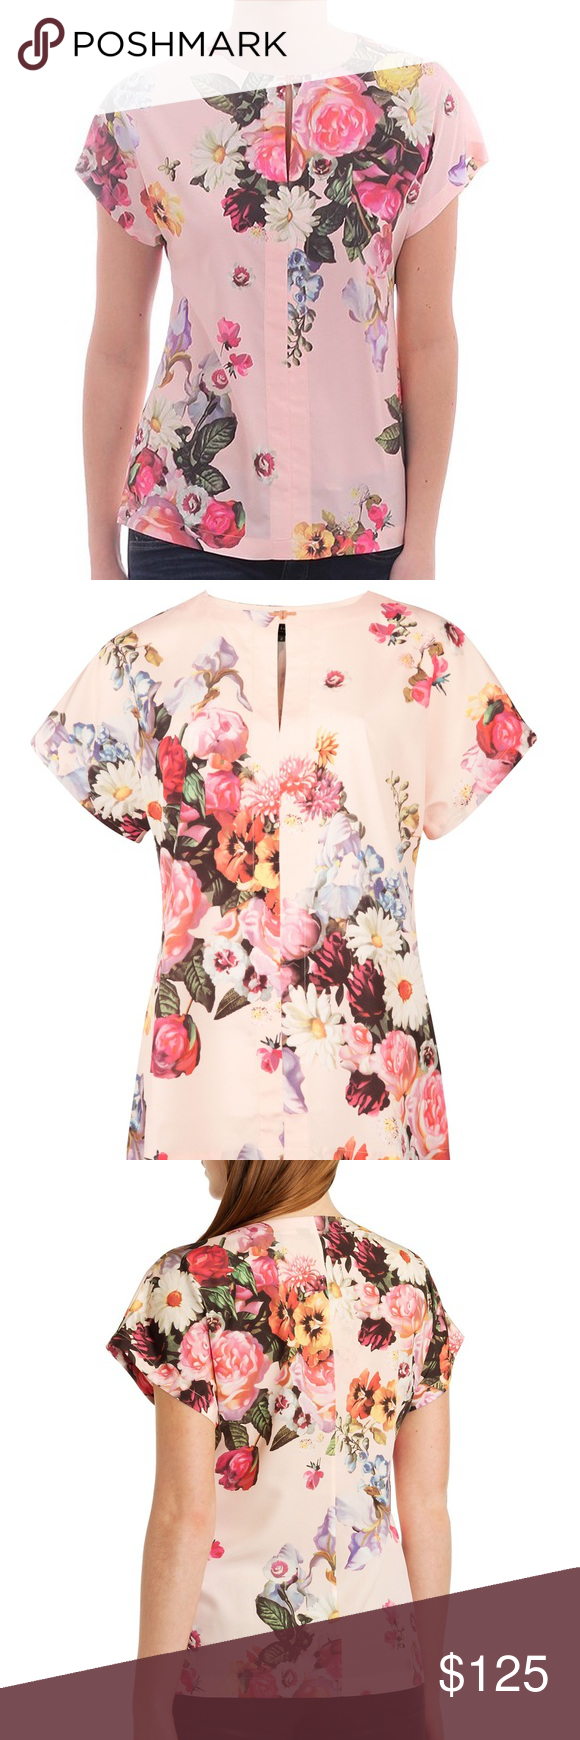 30c2ca8b59e14 Ted baker floral top Ted Baker Women s Edweena Oil Painting Print Size 0 In  mint condition Has cute rose gold hardware. Ted Baker London Tops